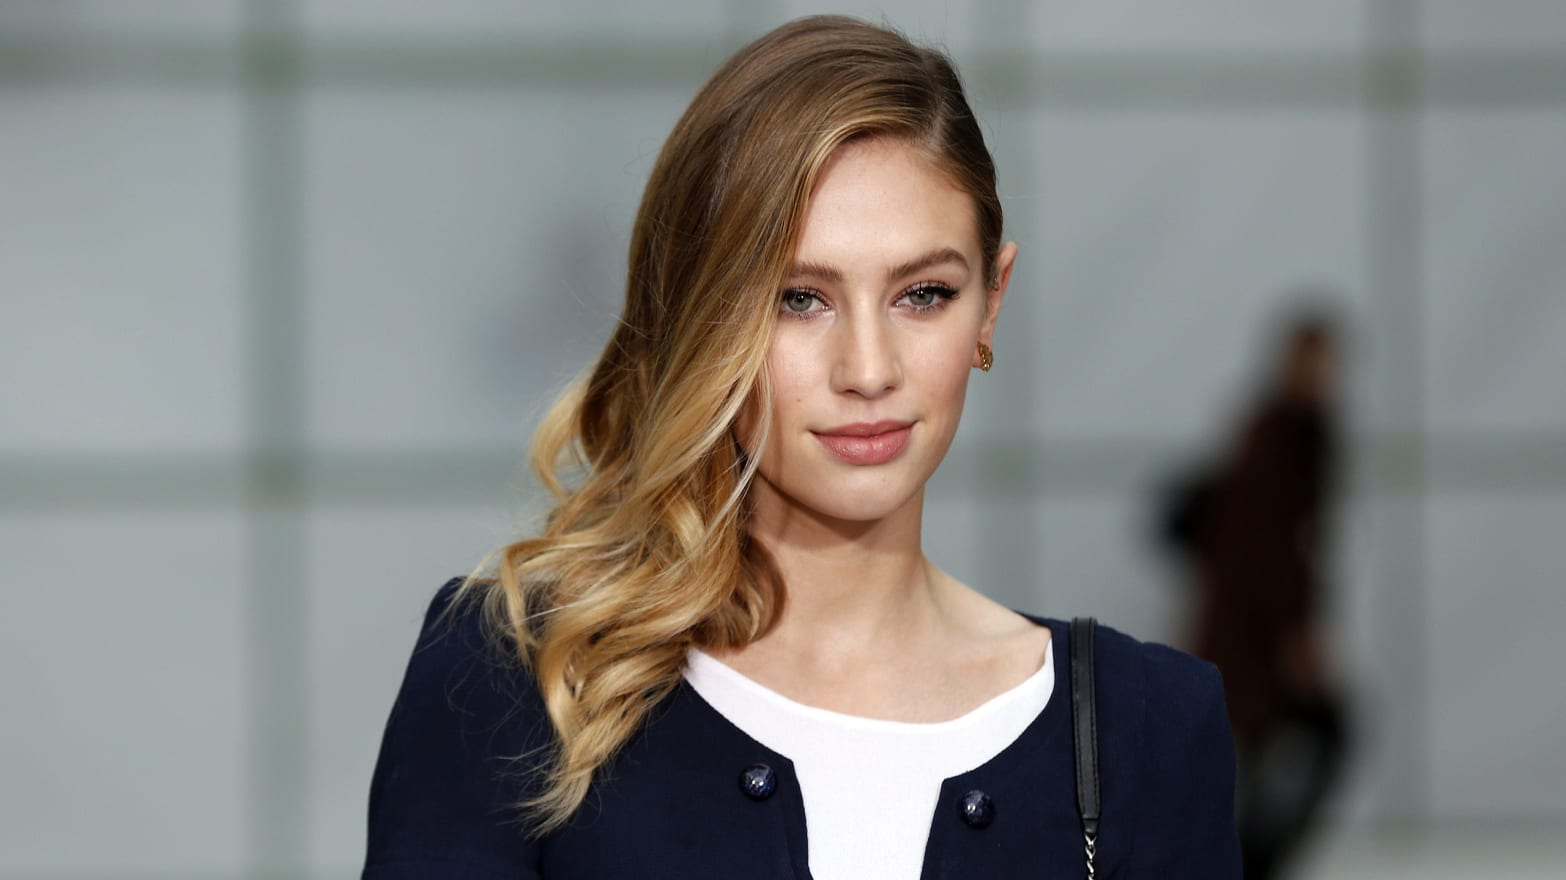 Dylan Penn, the Stunning Daughter of Robin Wright and Sean